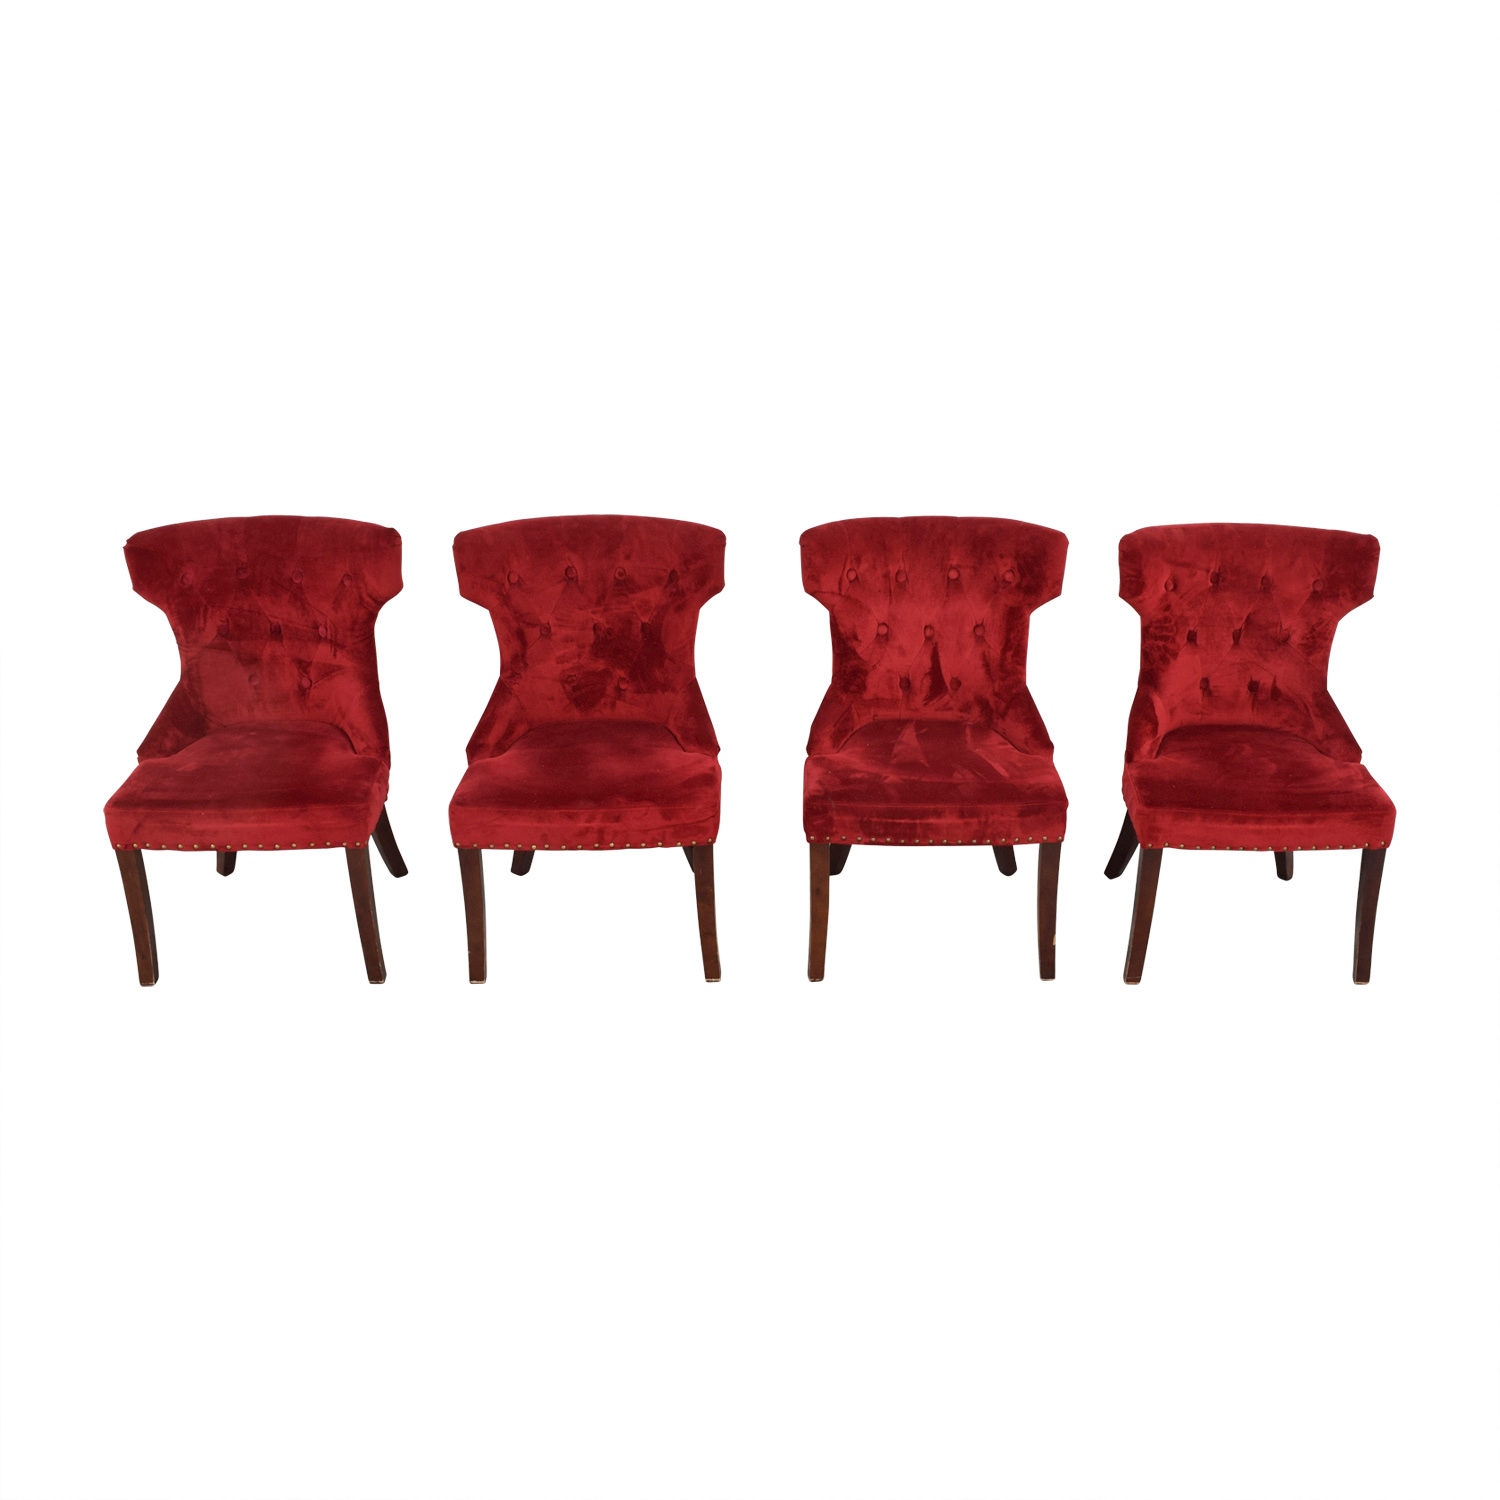 buy Tufted Nailhead Red Velvet Dining Chairs online